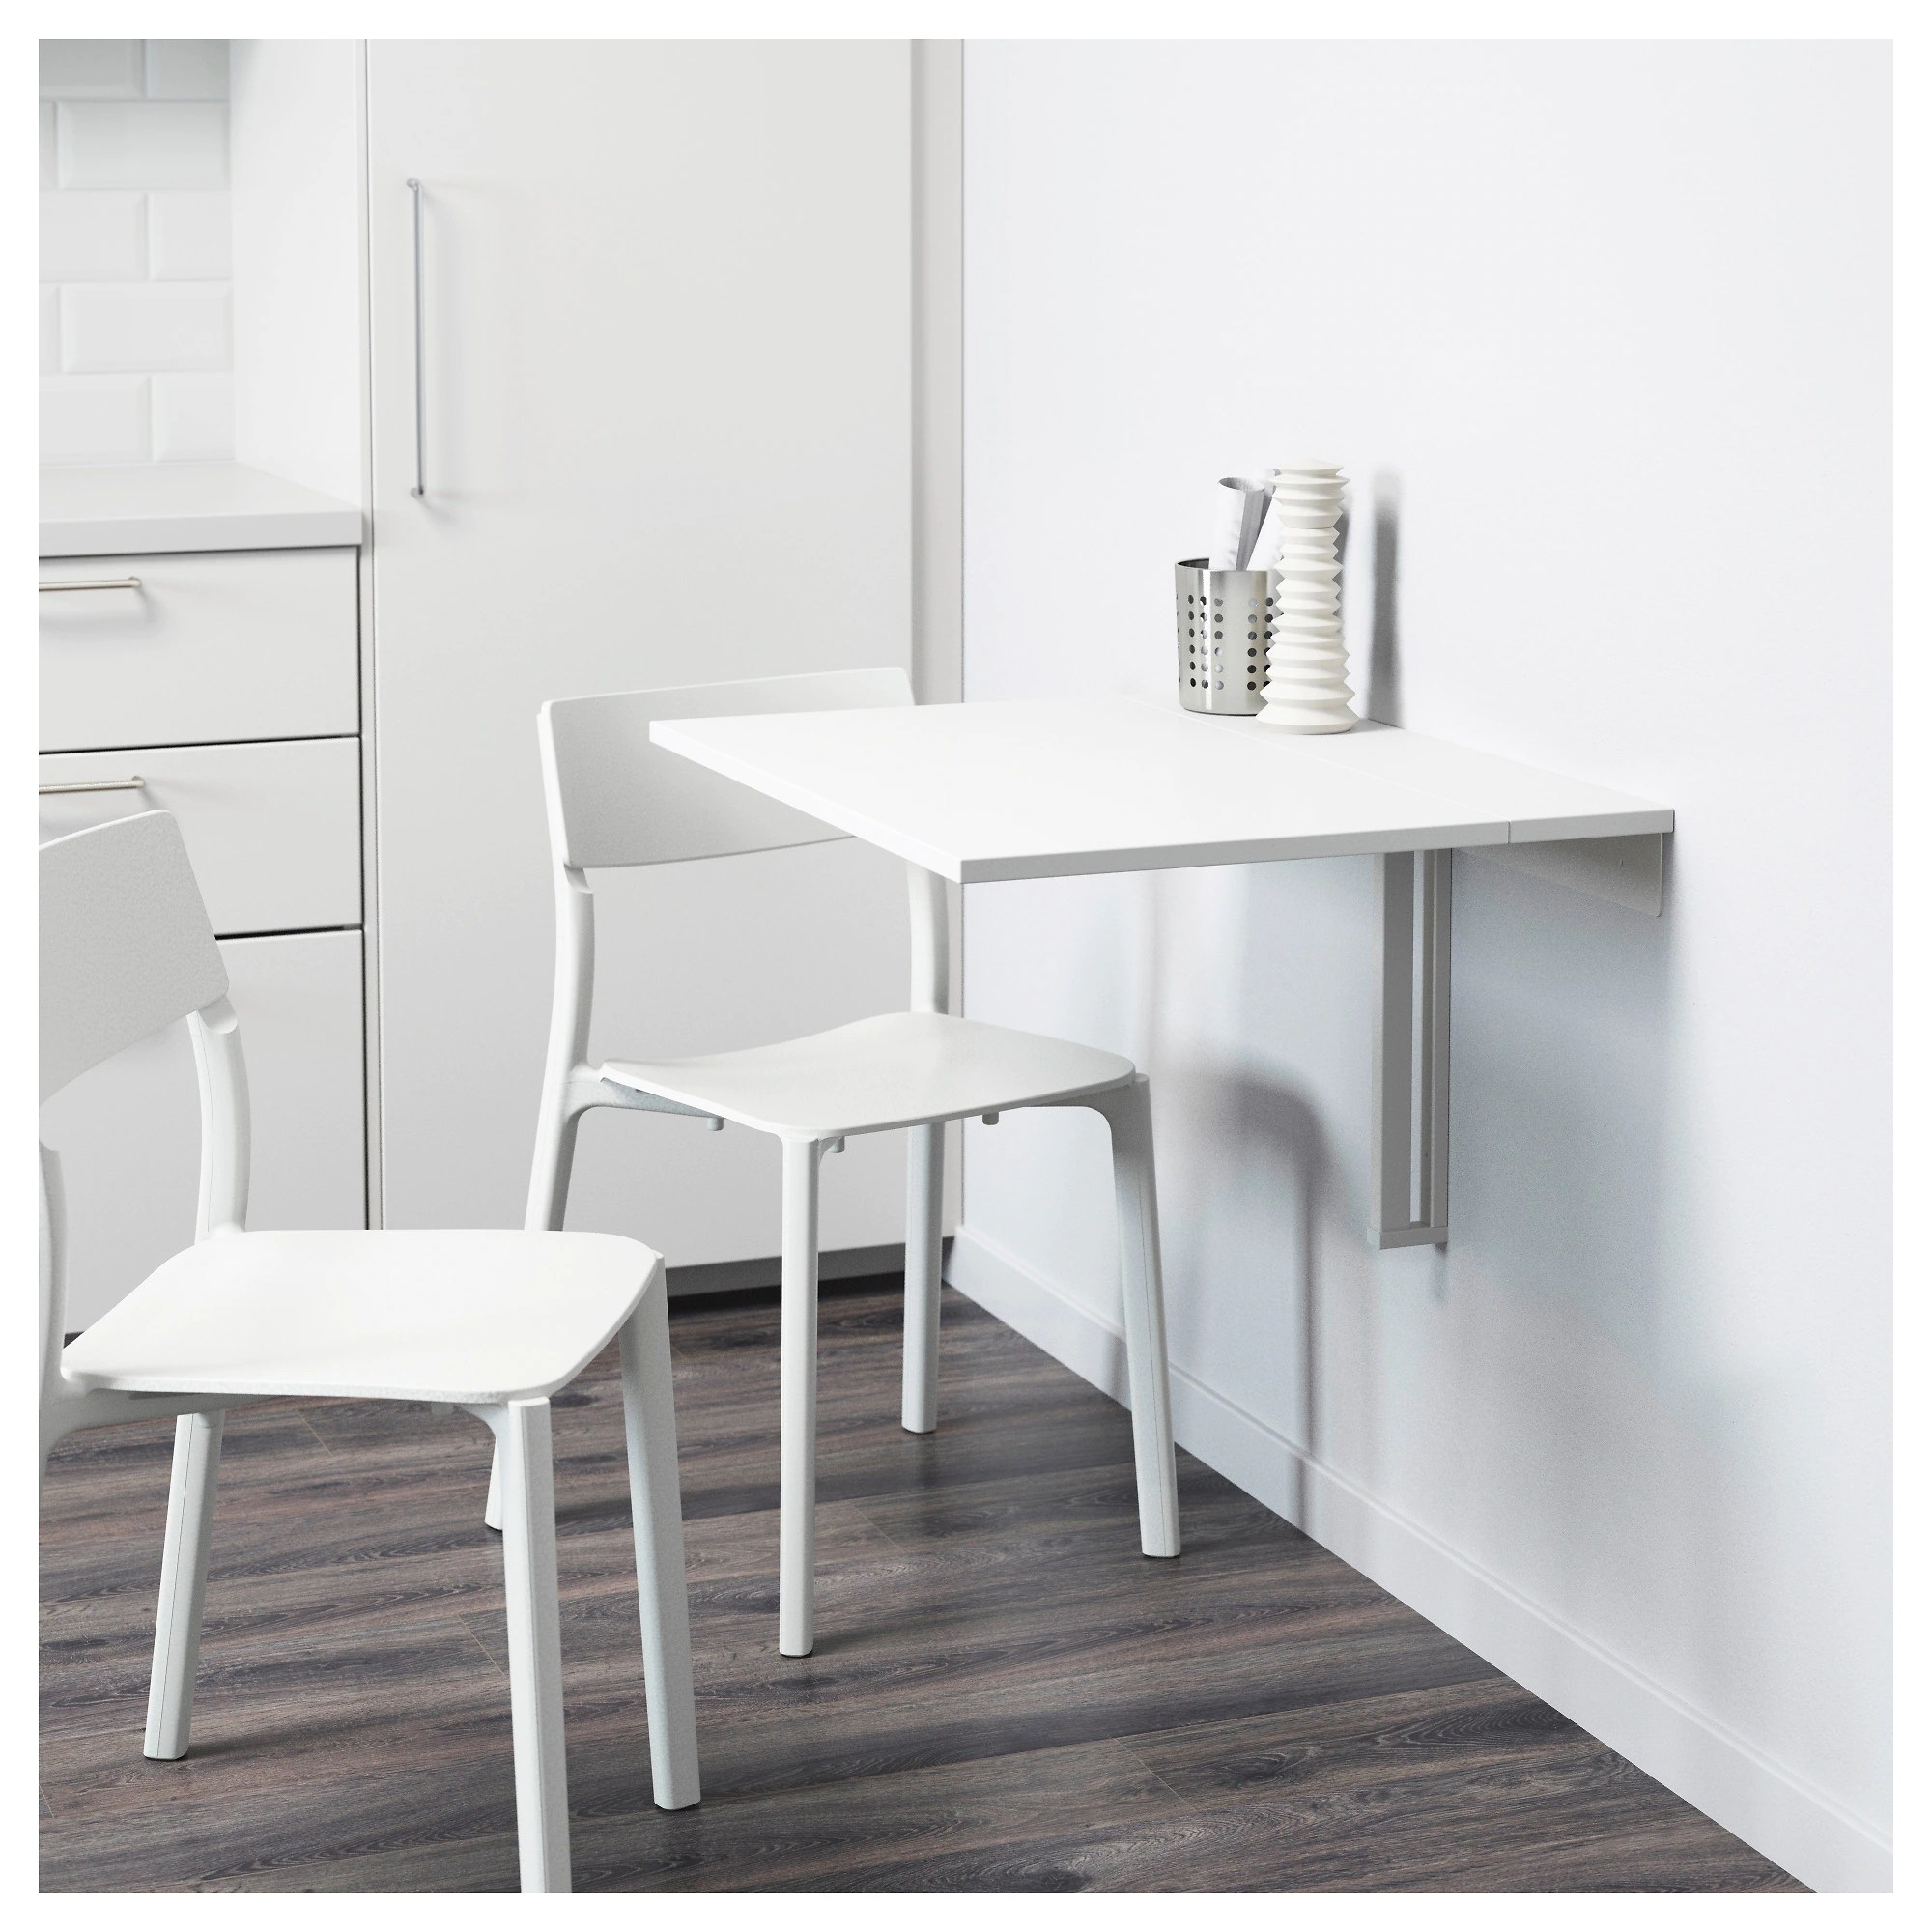 Mesas Plegables De Pared Image Of Mesa Abatible Pared Cocina Ikea Norberg Mesa Plegable De